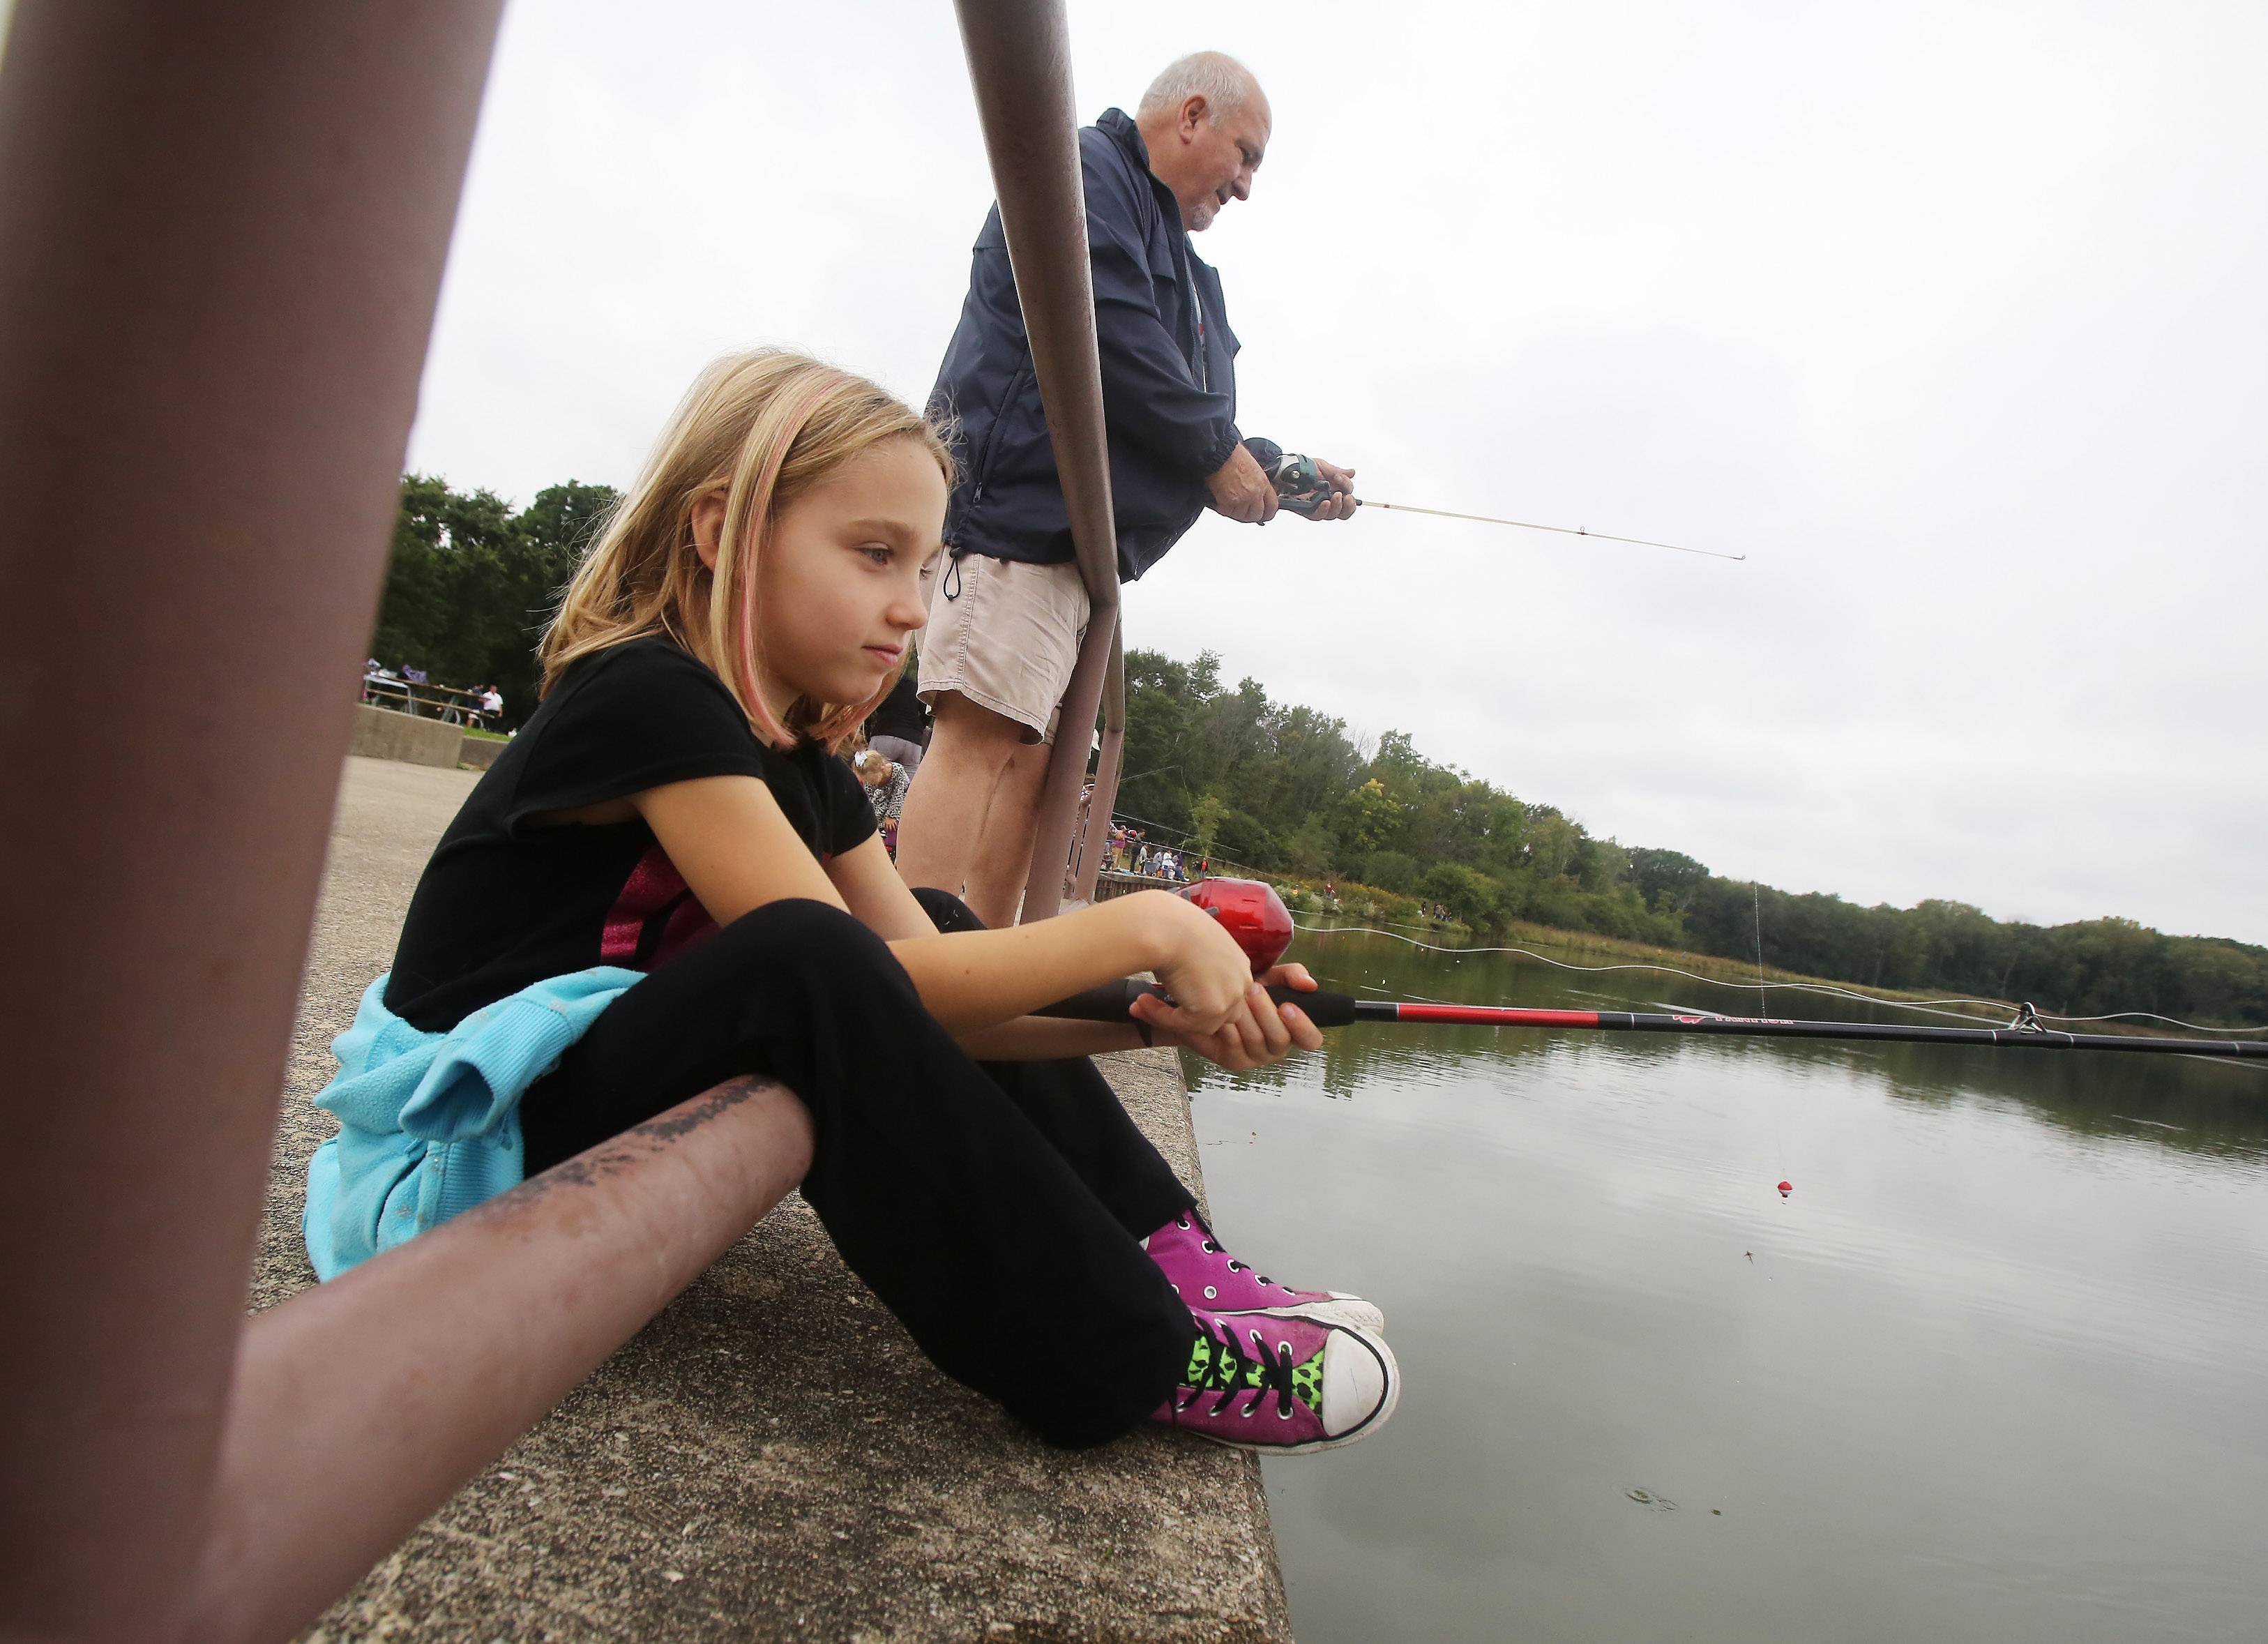 Gilbert R. Boucher II/gboucher@dailyherald.comLilli Kersting, 8, of Hoffman Estates fishes with her grandfather, Jim Rambert, during the annual fishing derby hosted by Cook County Commissioner Timothy O. Schneider at Busse Woods Forest Preserve in Elk Grove Village on Sunday. The event was part of 100 events in one week to celebrate the 100th anniversary of the Cook County Forest Preserves.